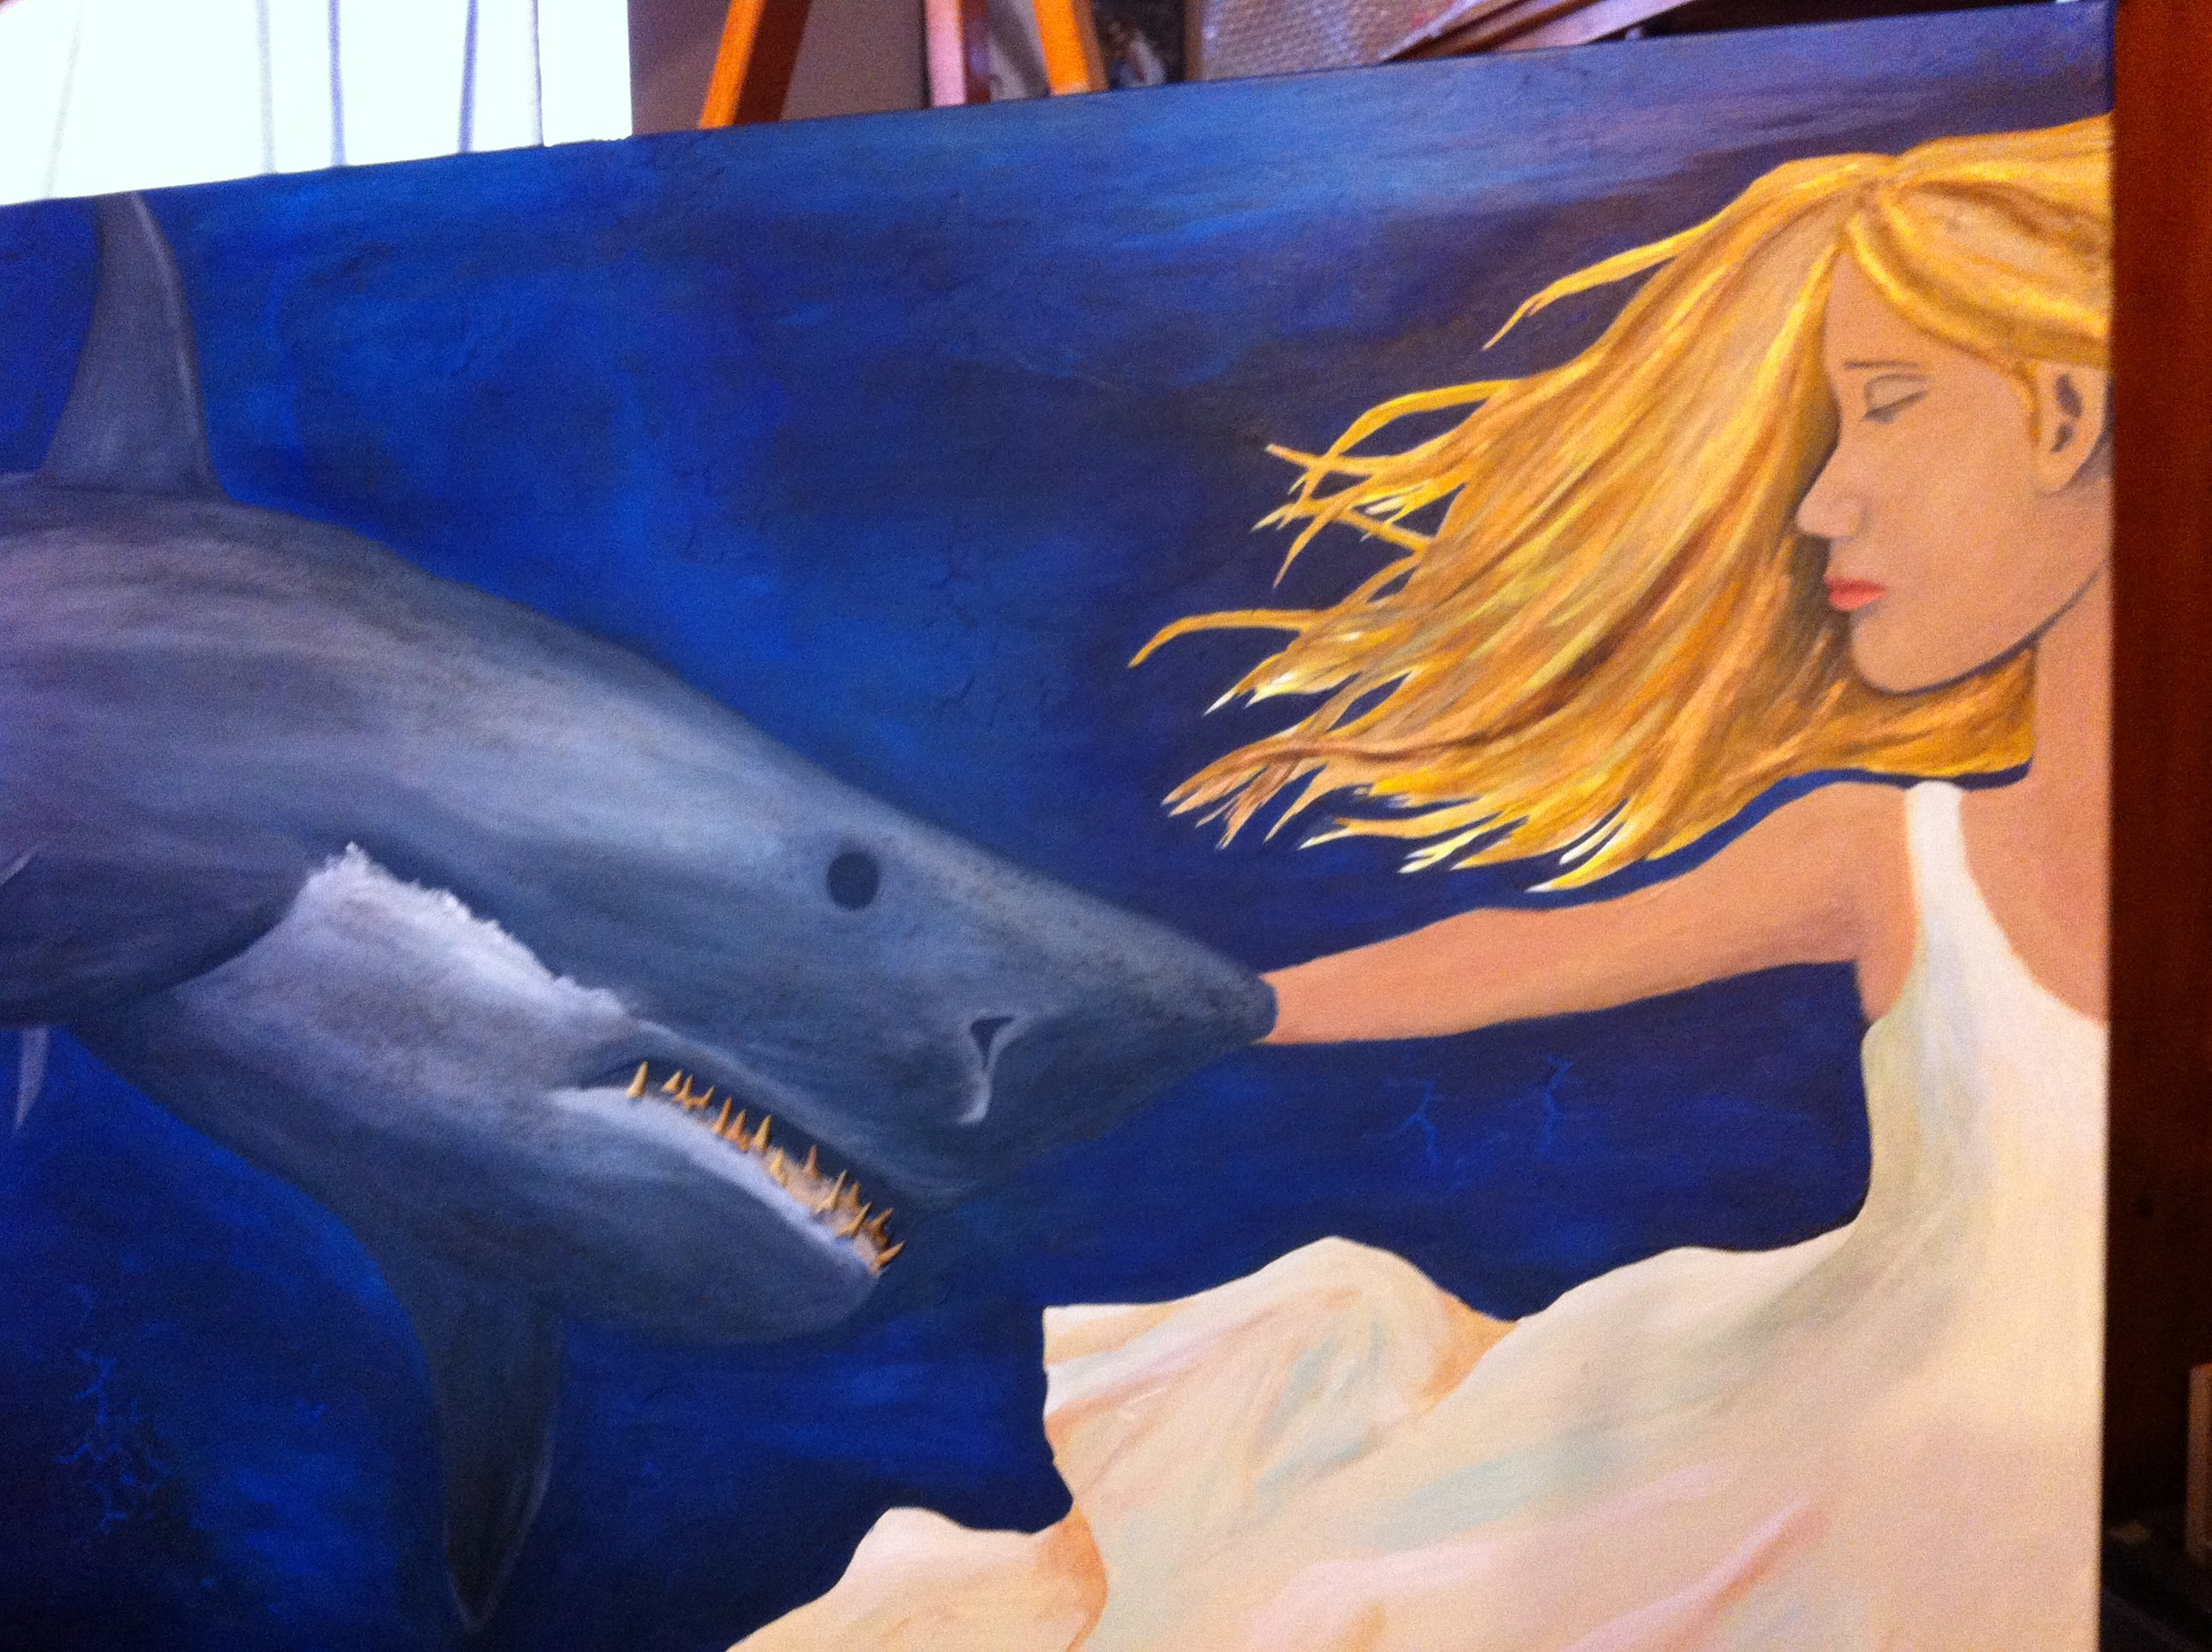 My first attempt. Funny, the shark has not changed. I nailed it on the first try. The girl? Eh, not so much.